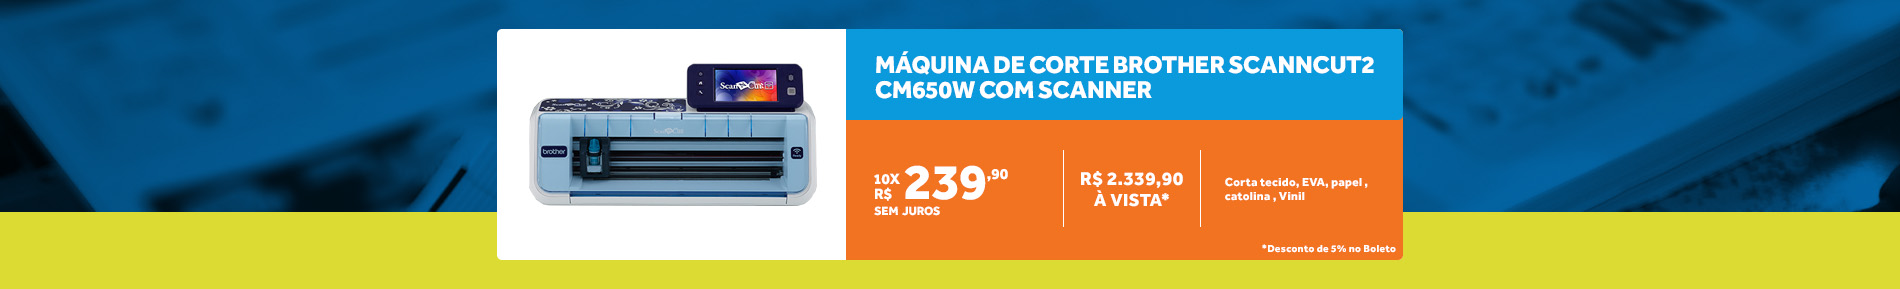 MAQUINA PARA RECORTE COM SCANNER BROTHER SCANCUT CM650W